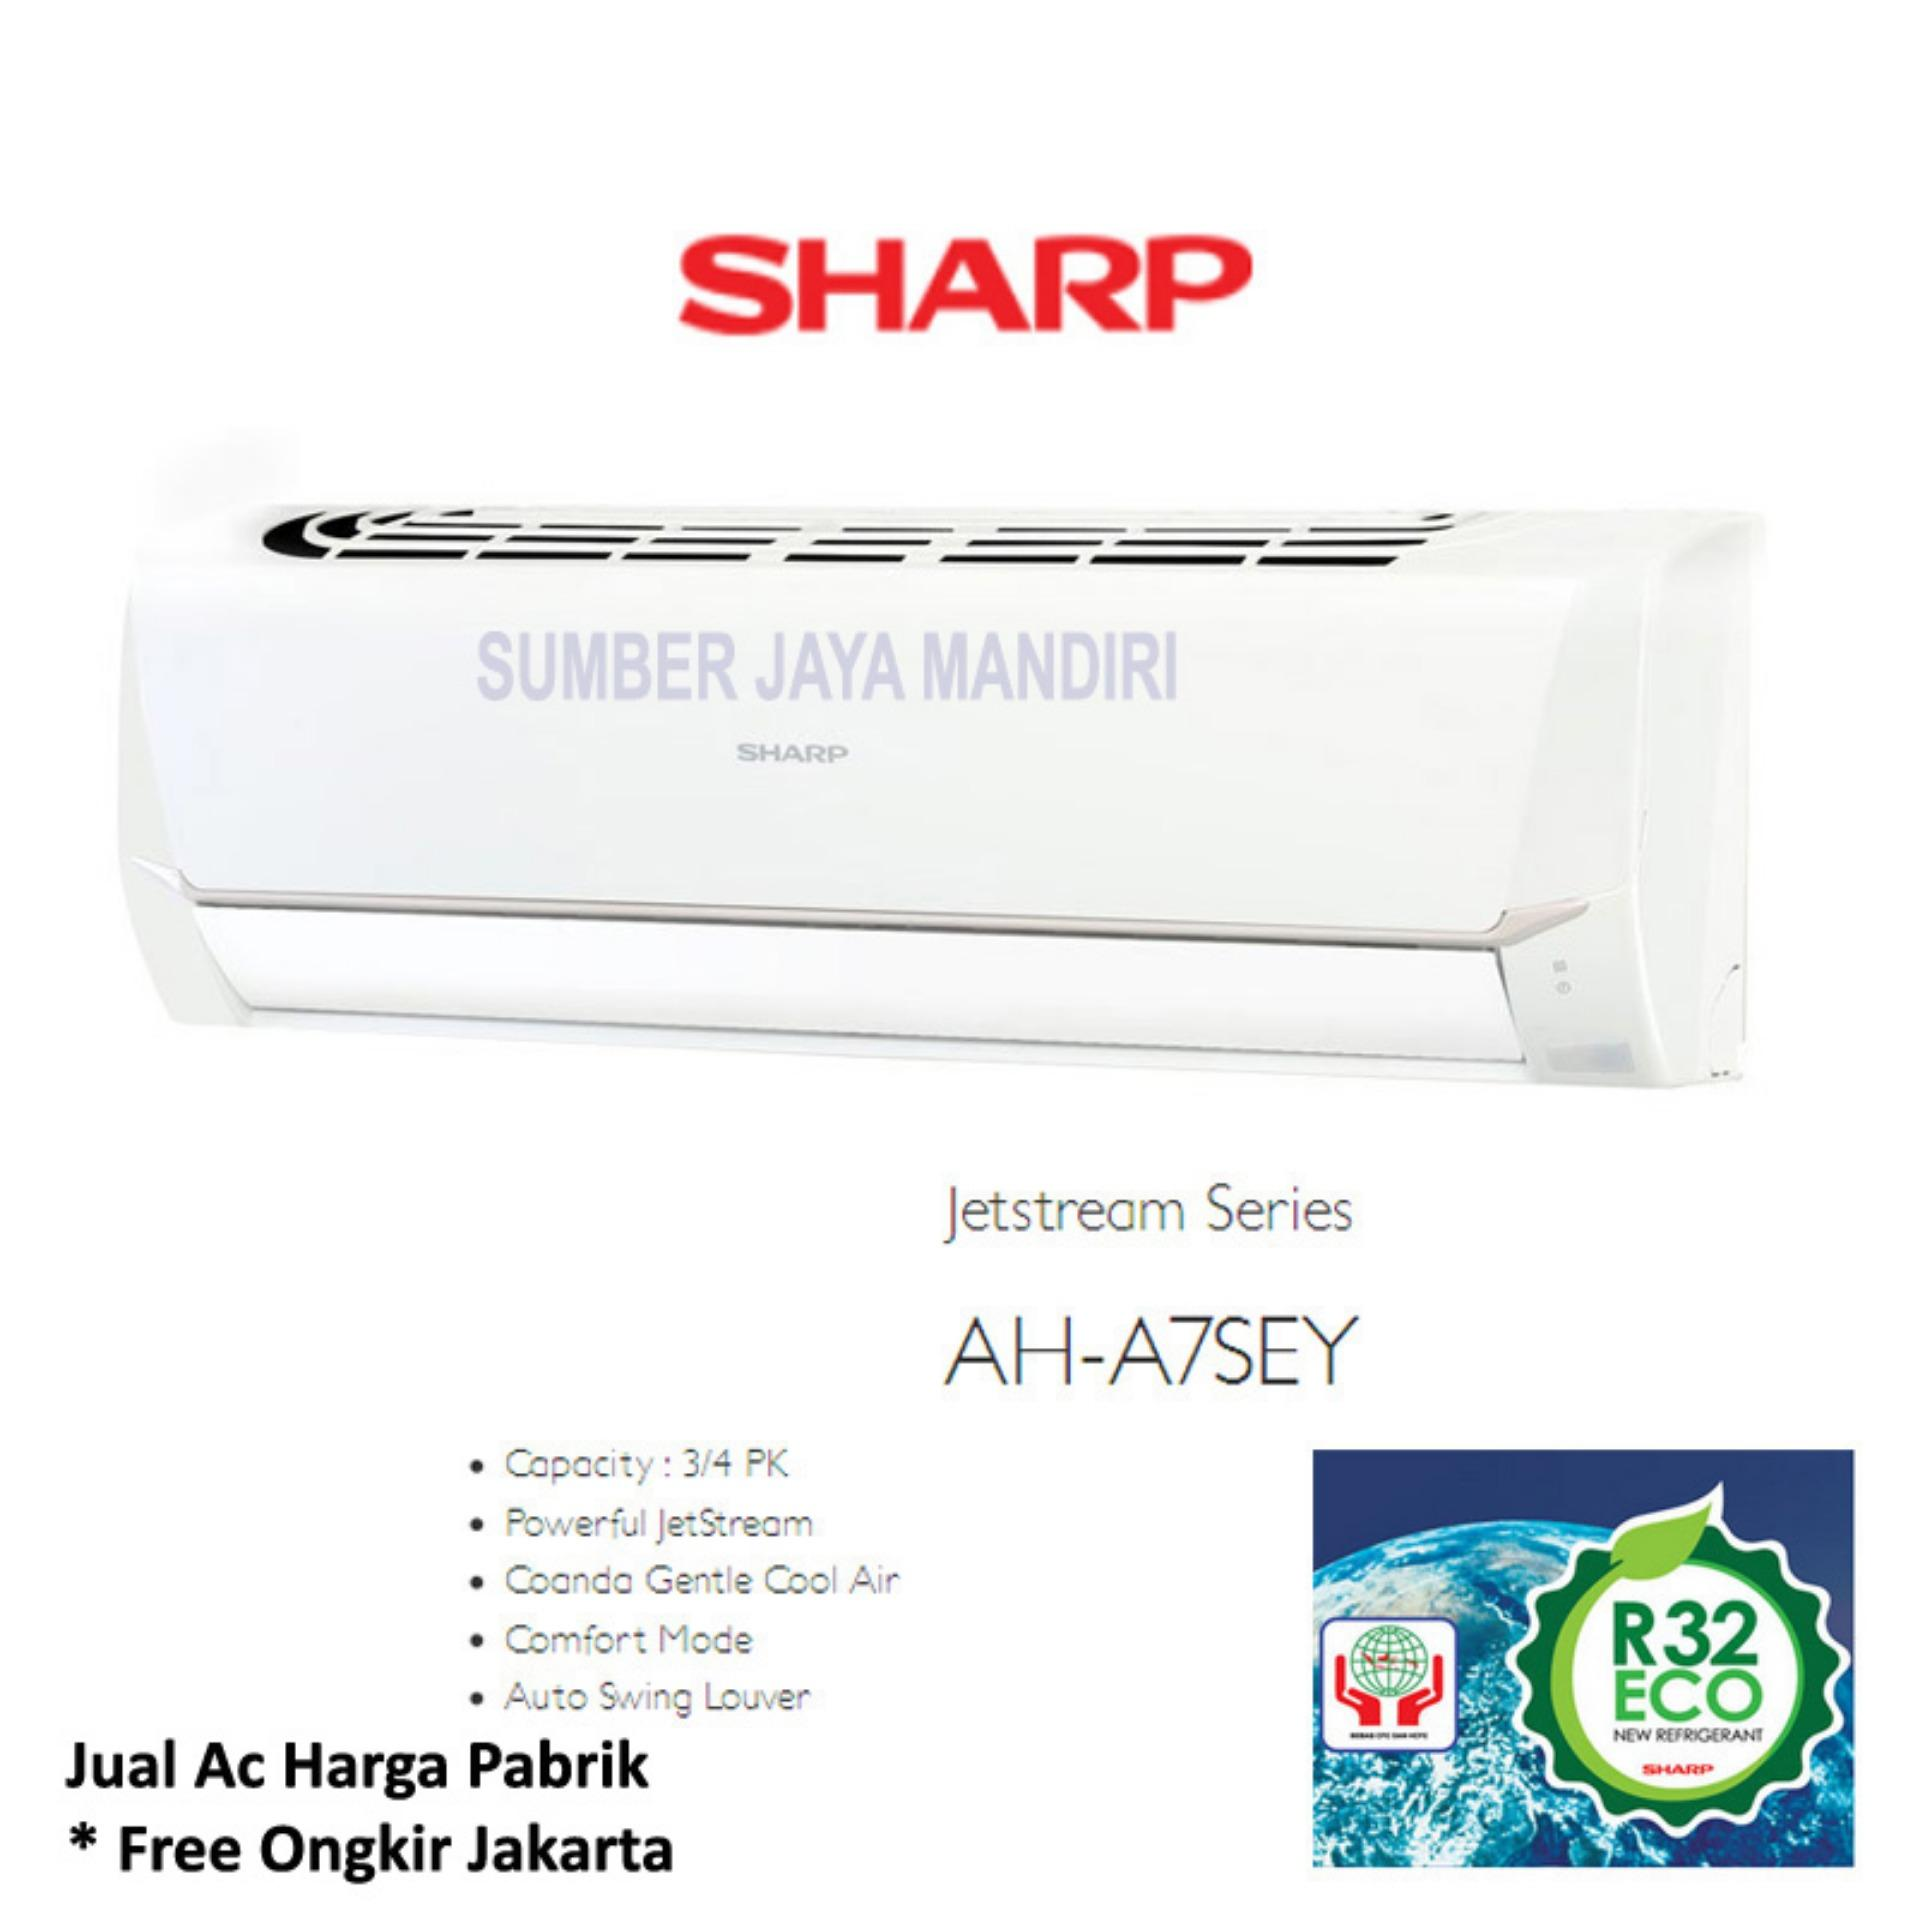 Sharp Air Conditioner Jetstream Plasmacluster Series 075pk Ahap7ssy Ac Split Sayonara Panas Ah Ap 9shl 1 Pk Low Watt Putih A7sey Khusus Jabodetabek Daftar Update Source